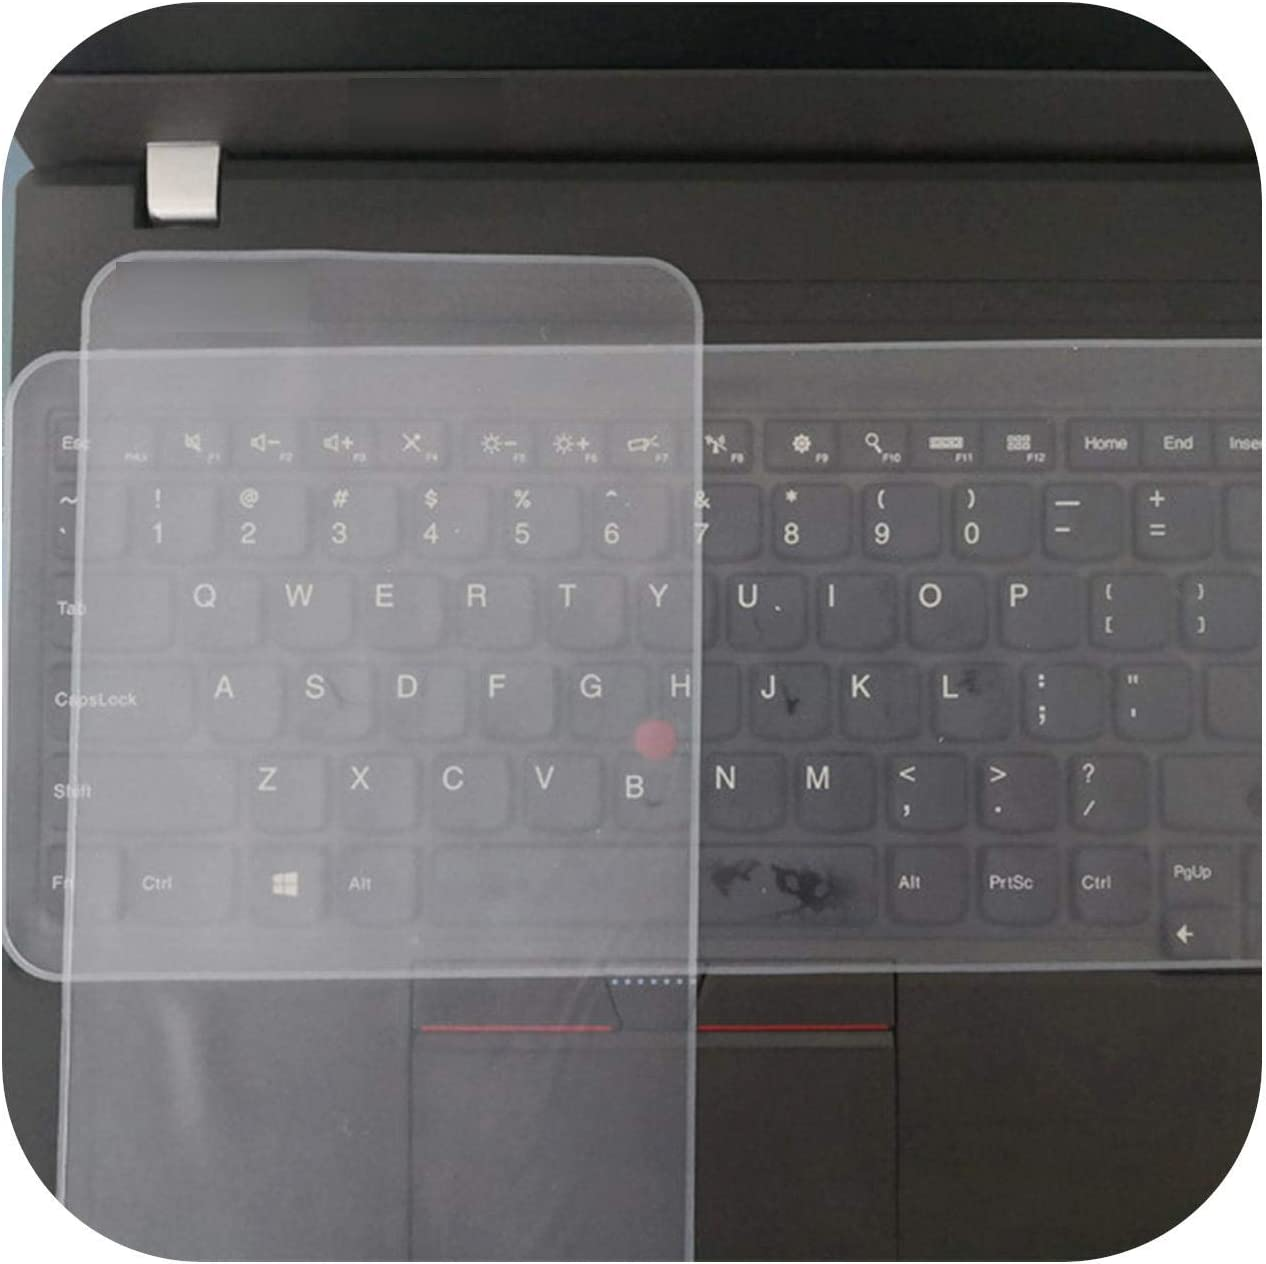 Silicone Transparent Keyboard Covers for Computer Waterproof Anti Dust Keyboard Covers Silicone for Mackbook Pro 15 Inch-13 Inch to 14 Inch